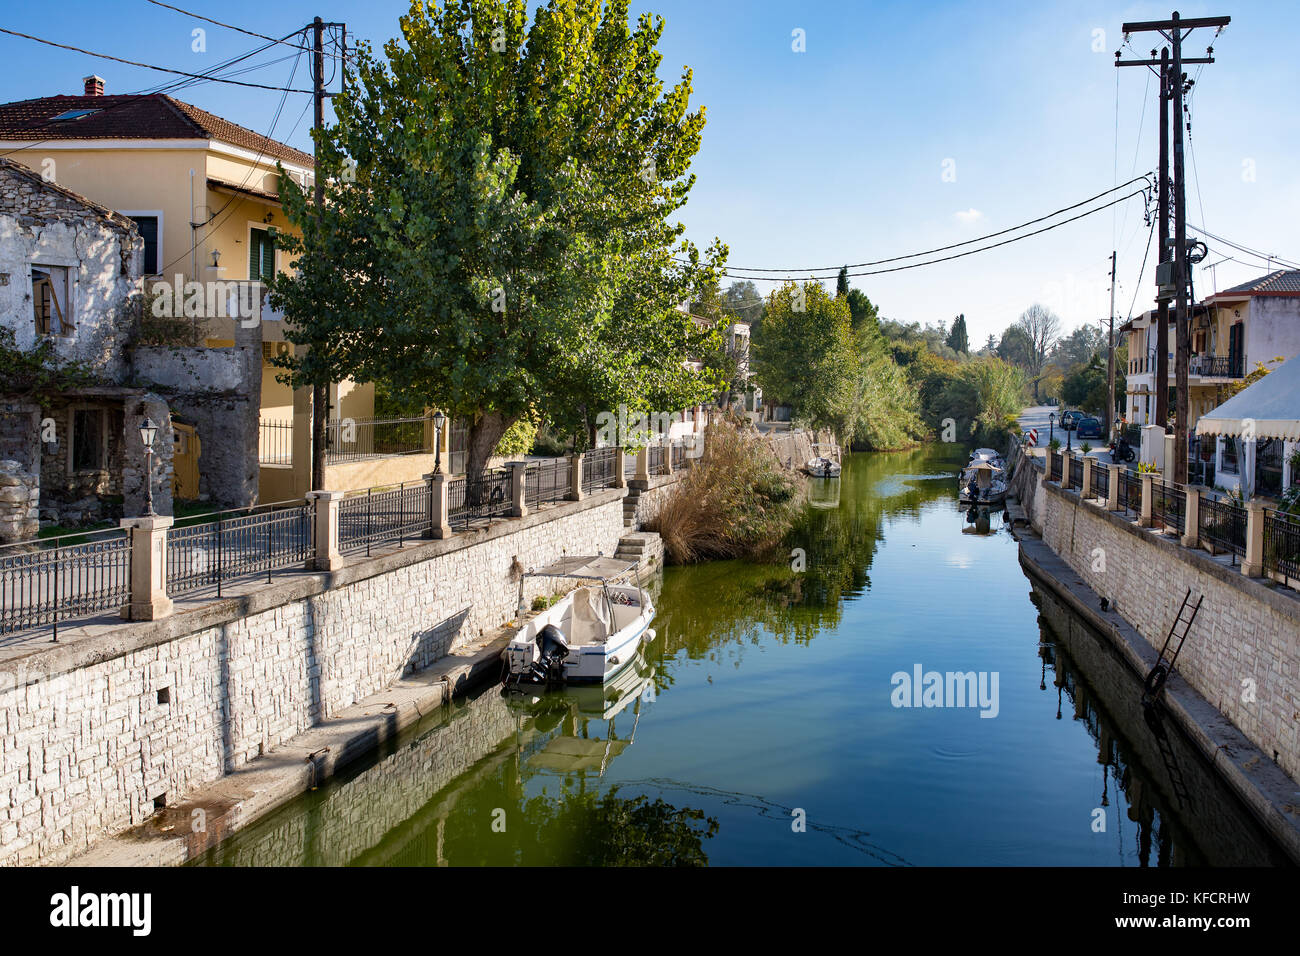 The canal or river in the greek town Lefkimmi, Ionian Islands, Corfu, Greece. Boats, restaurants, vacation in Greece. - Stock Image